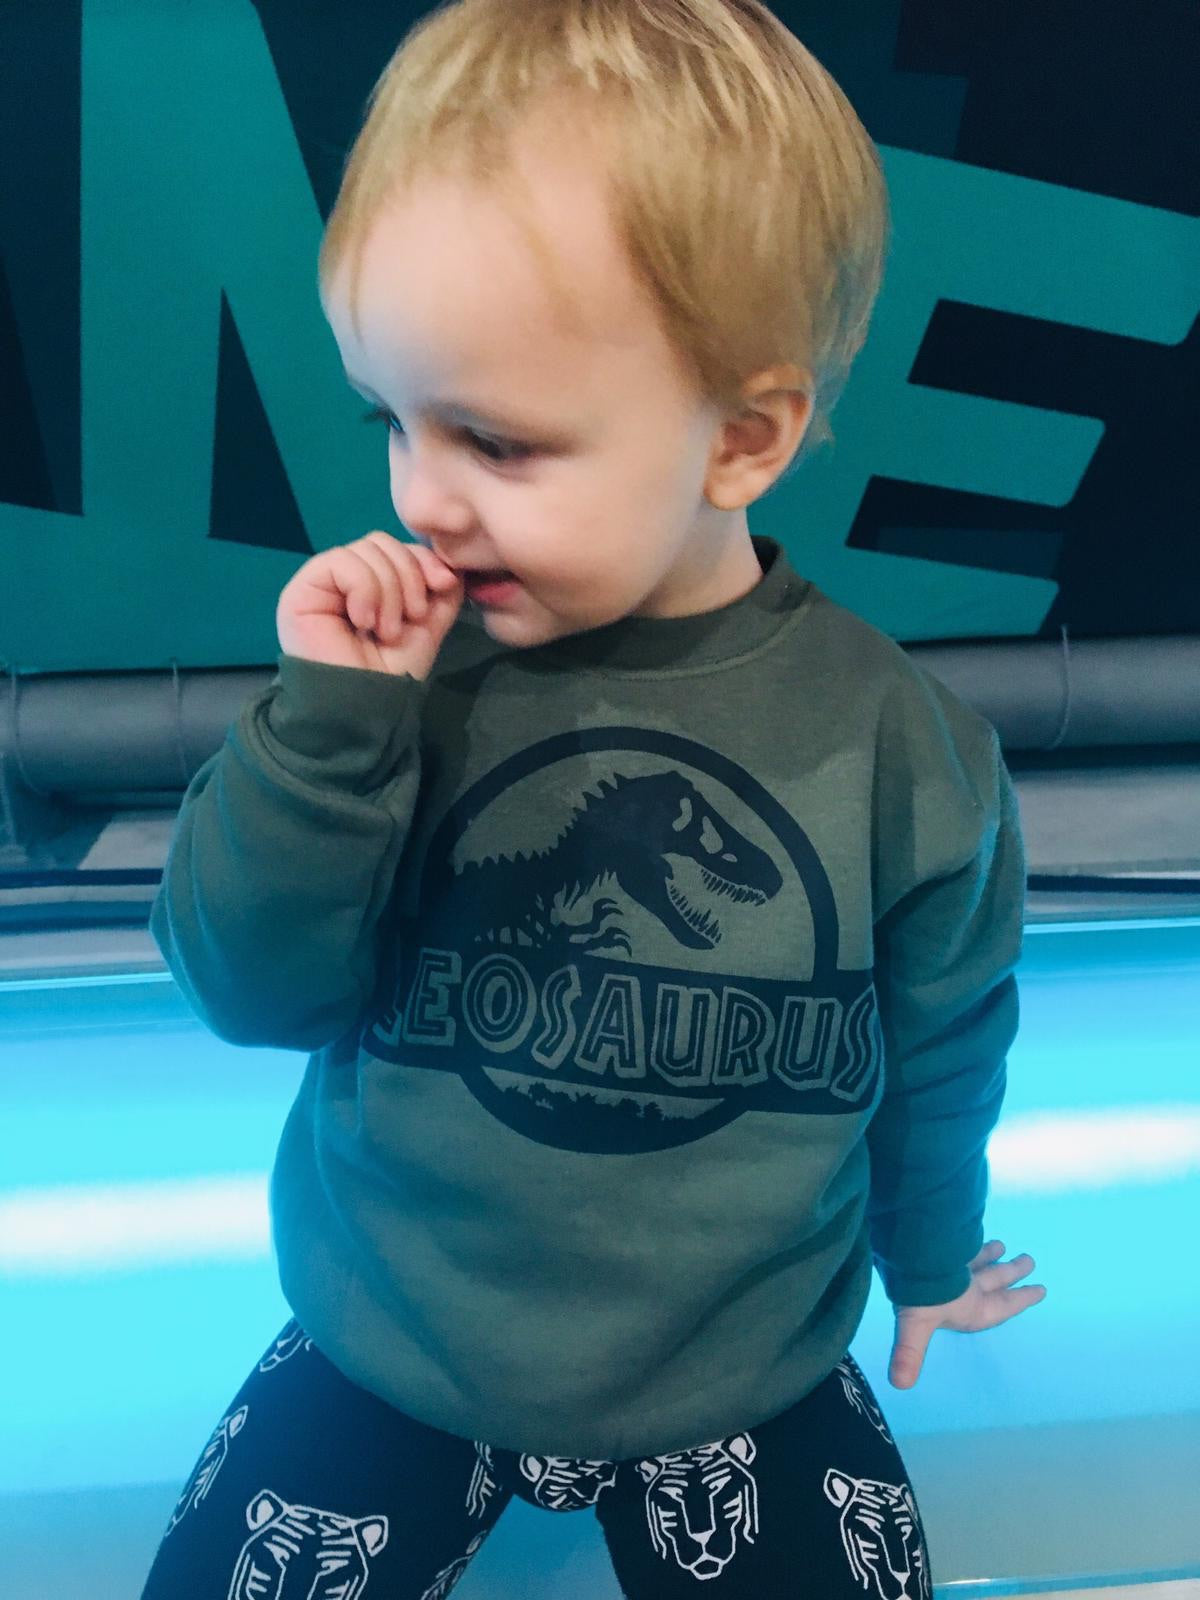 Personalised Jurassic sweatshirt